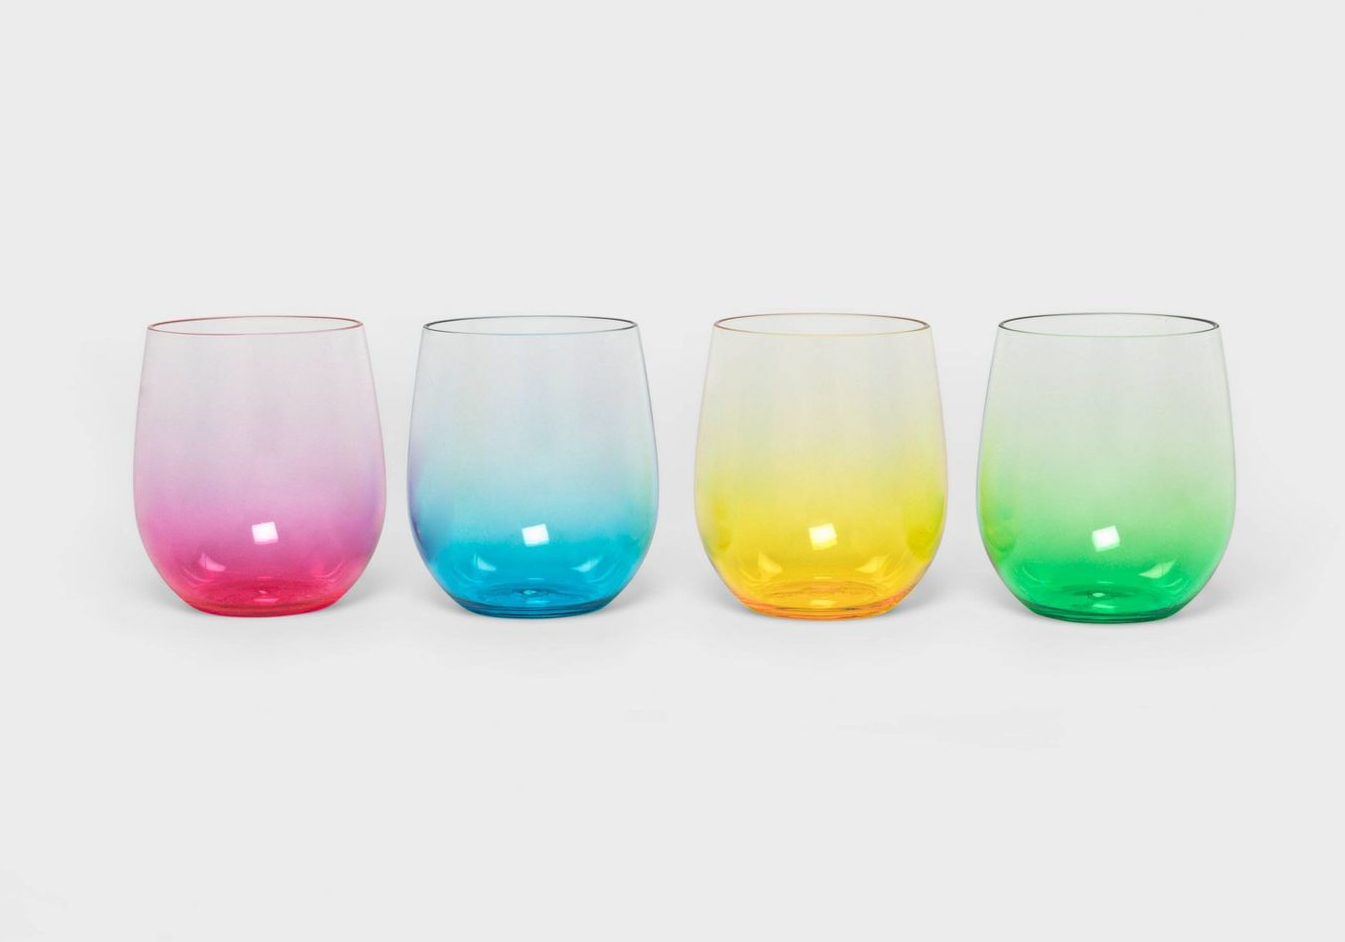 four ombre wine glasses in red, blue, yellow, and green